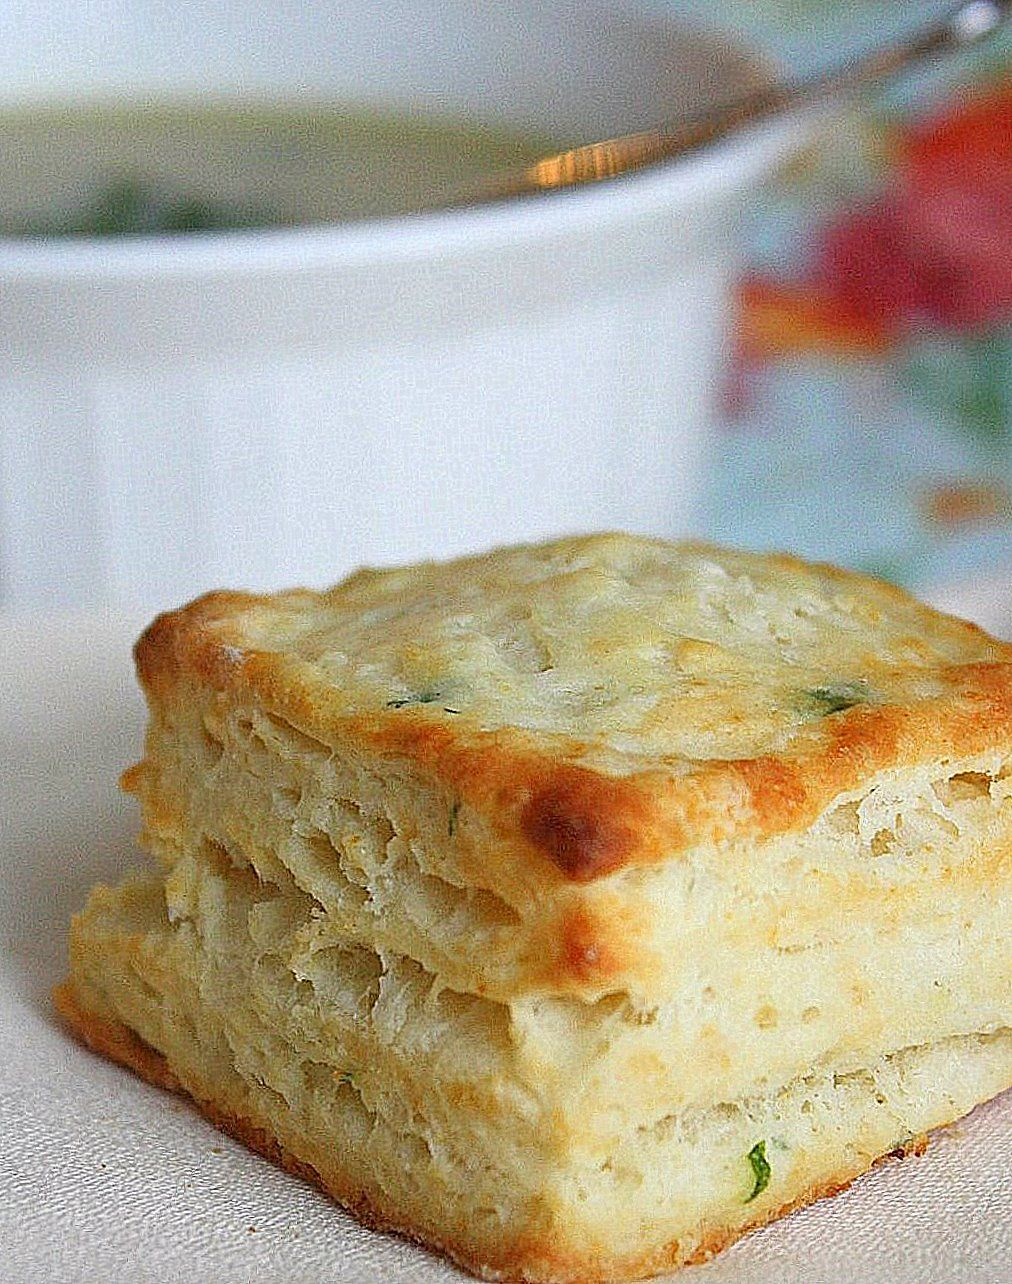 Parsley And Garlic Buttermilk Biscuits Food Recipes Biscuit Recipe